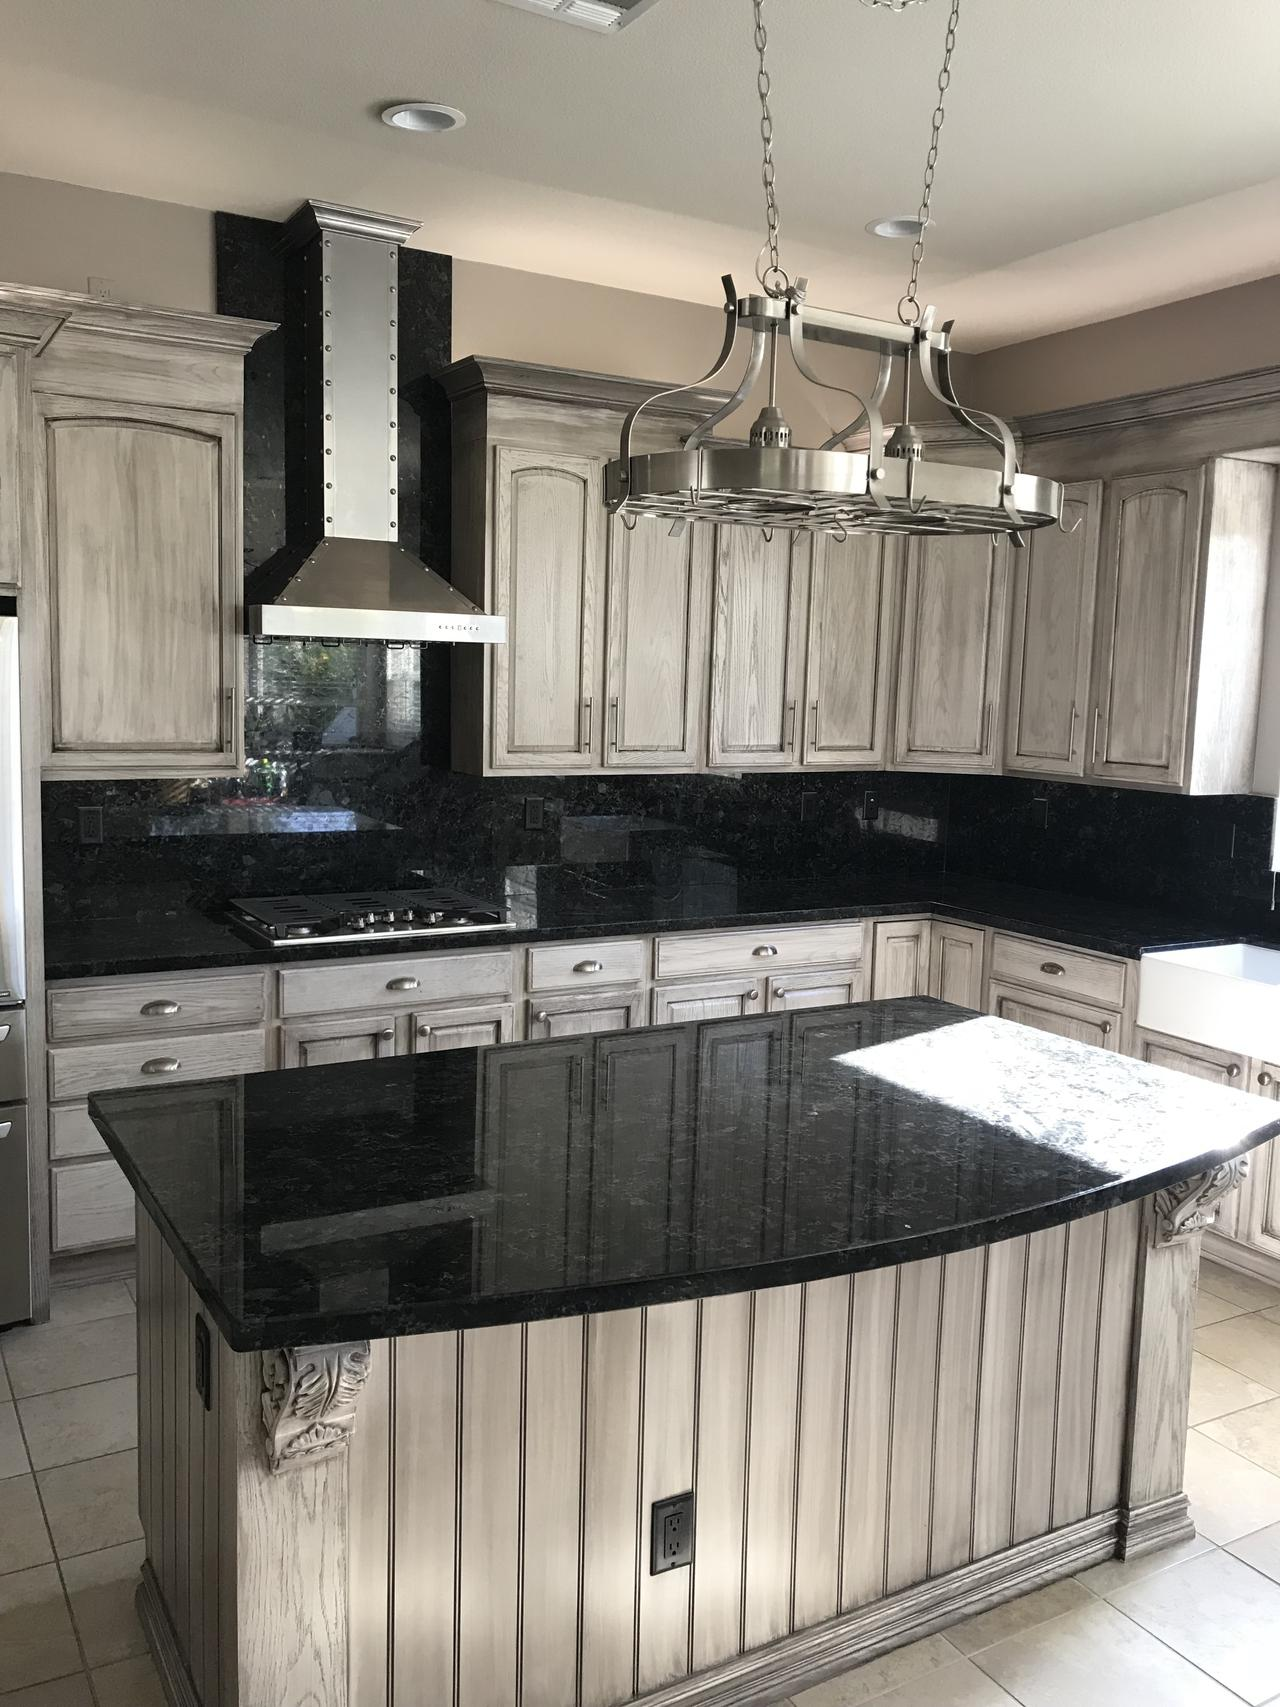 website-review-images/Kitchen Remodel 1.jpeg